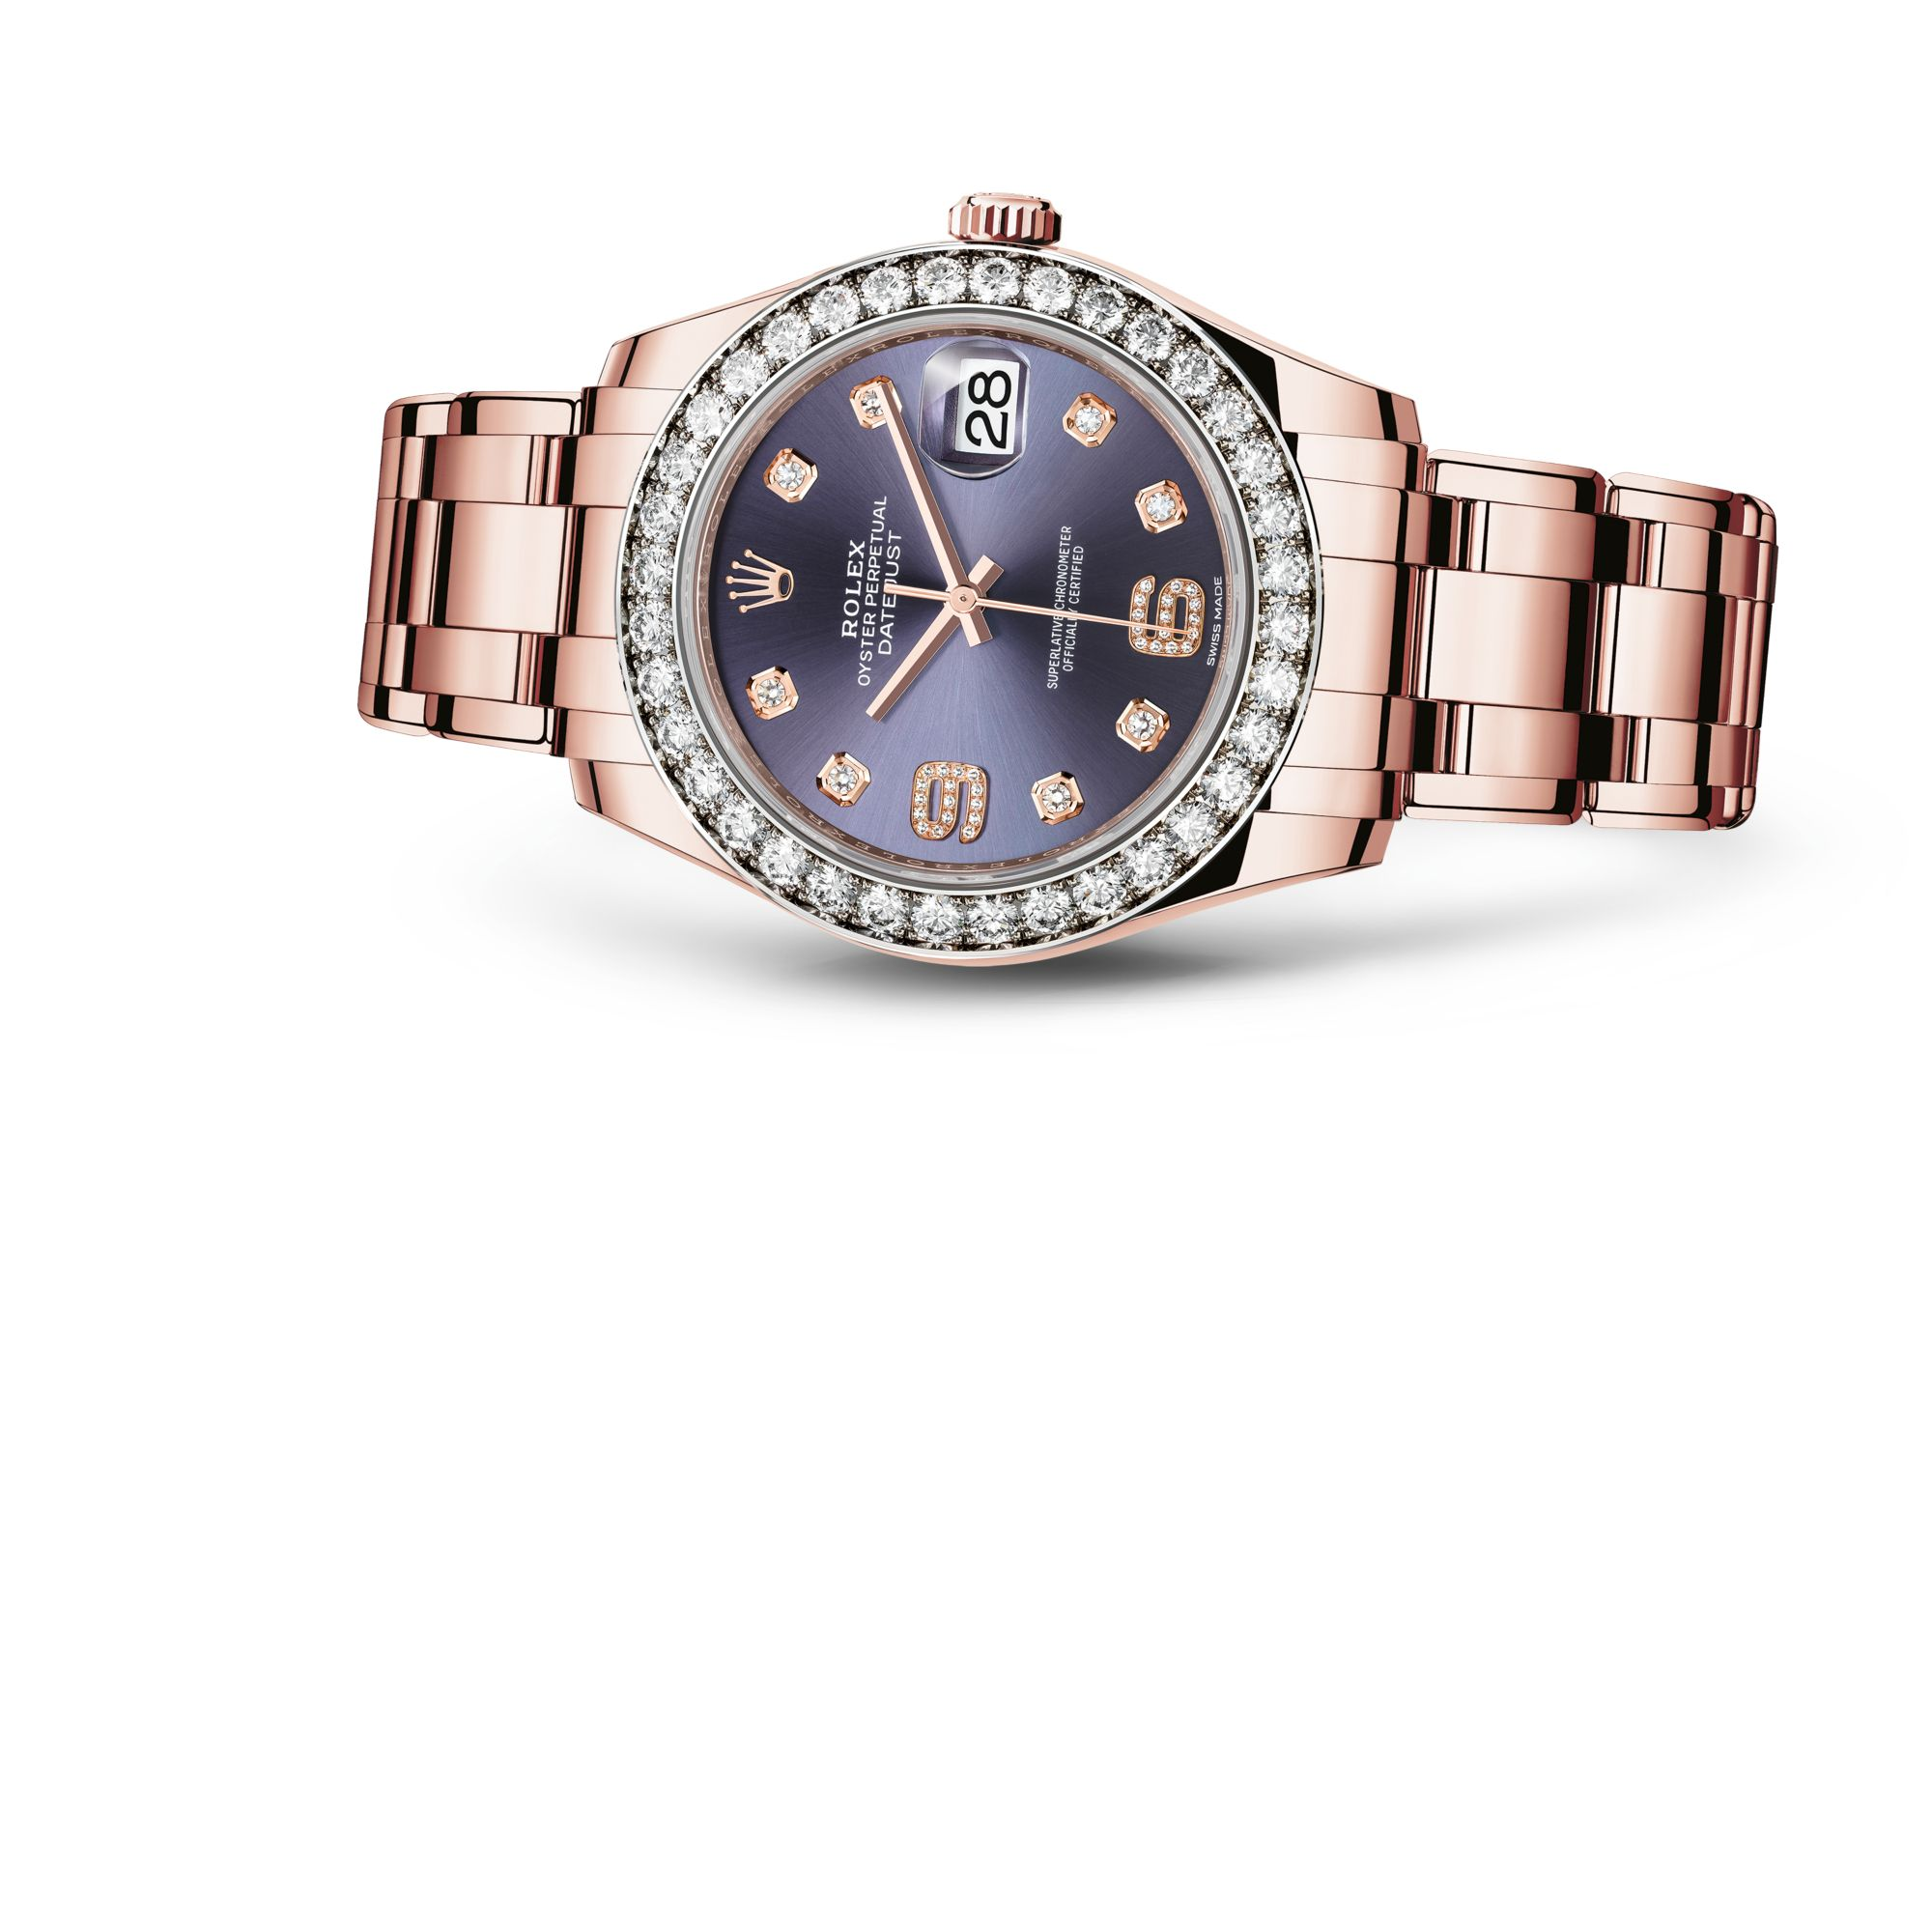 Rolex Pearlmaster 39 M86285-0004